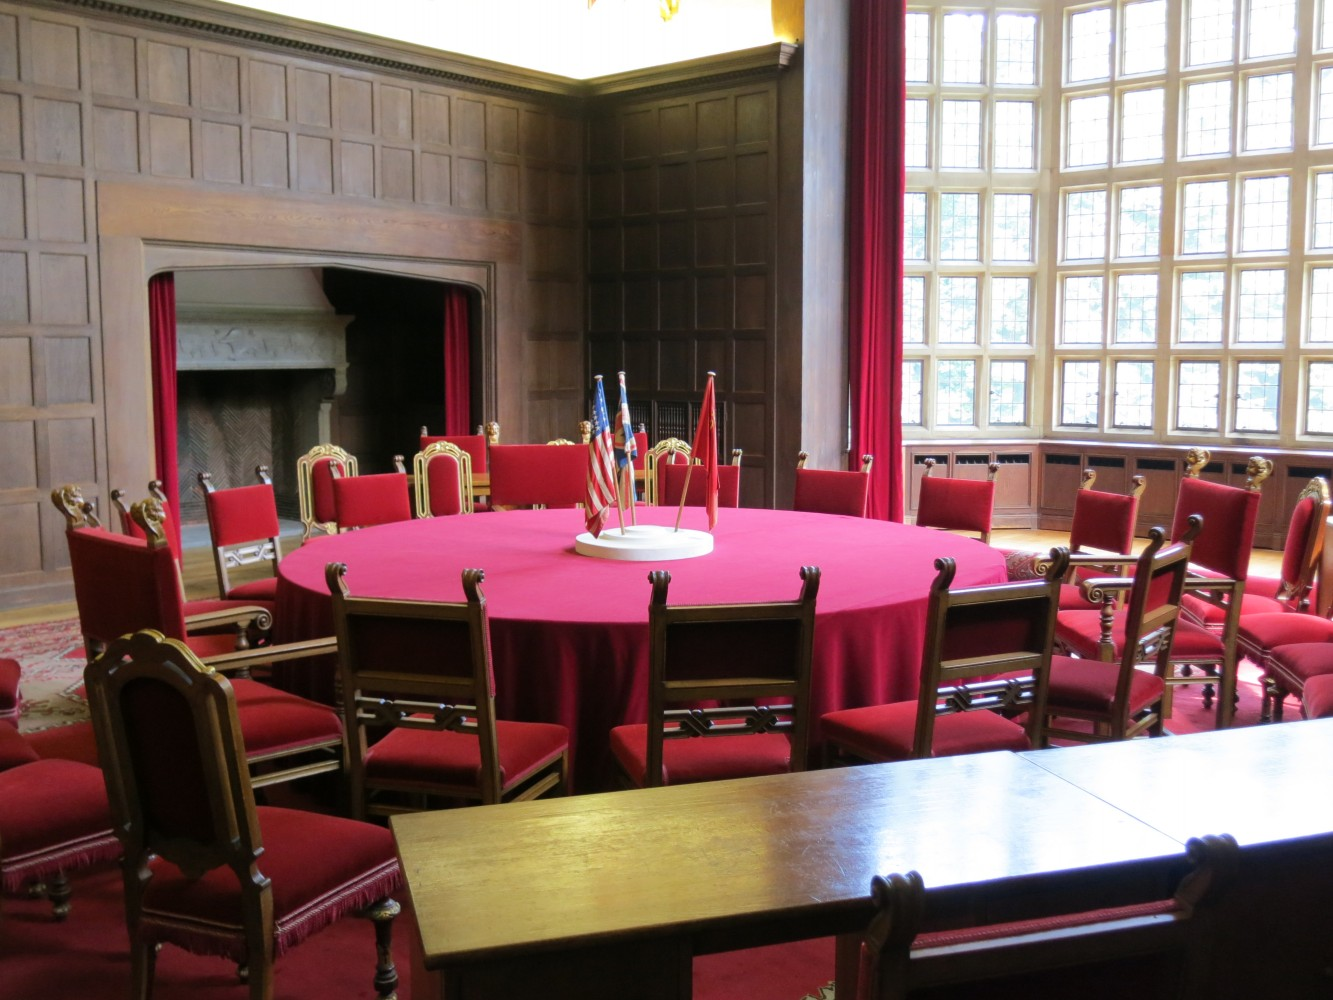 De conferentietafel in Schloss Cecilienhof in Potsdam. Foto: Flickr/Ian Gray/cc